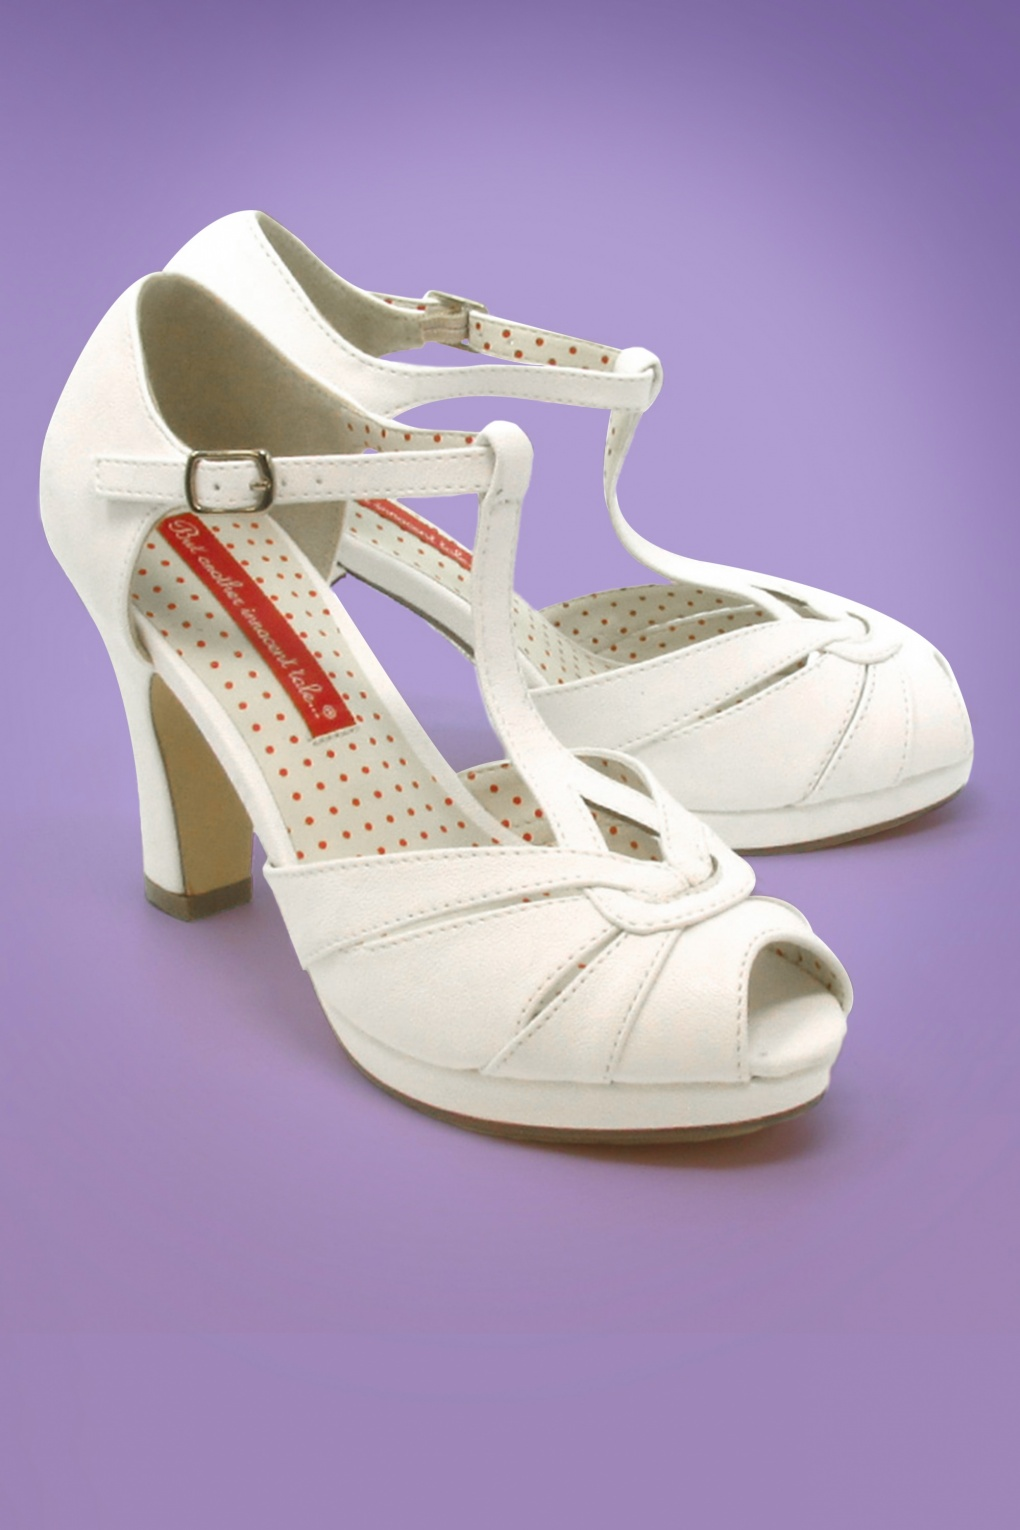 1930s Style Shoes – Art Deco Shoes 30s Lacey Art Deco T-Strap Pumps in Ivory �72.48 AT vintagedancer.com